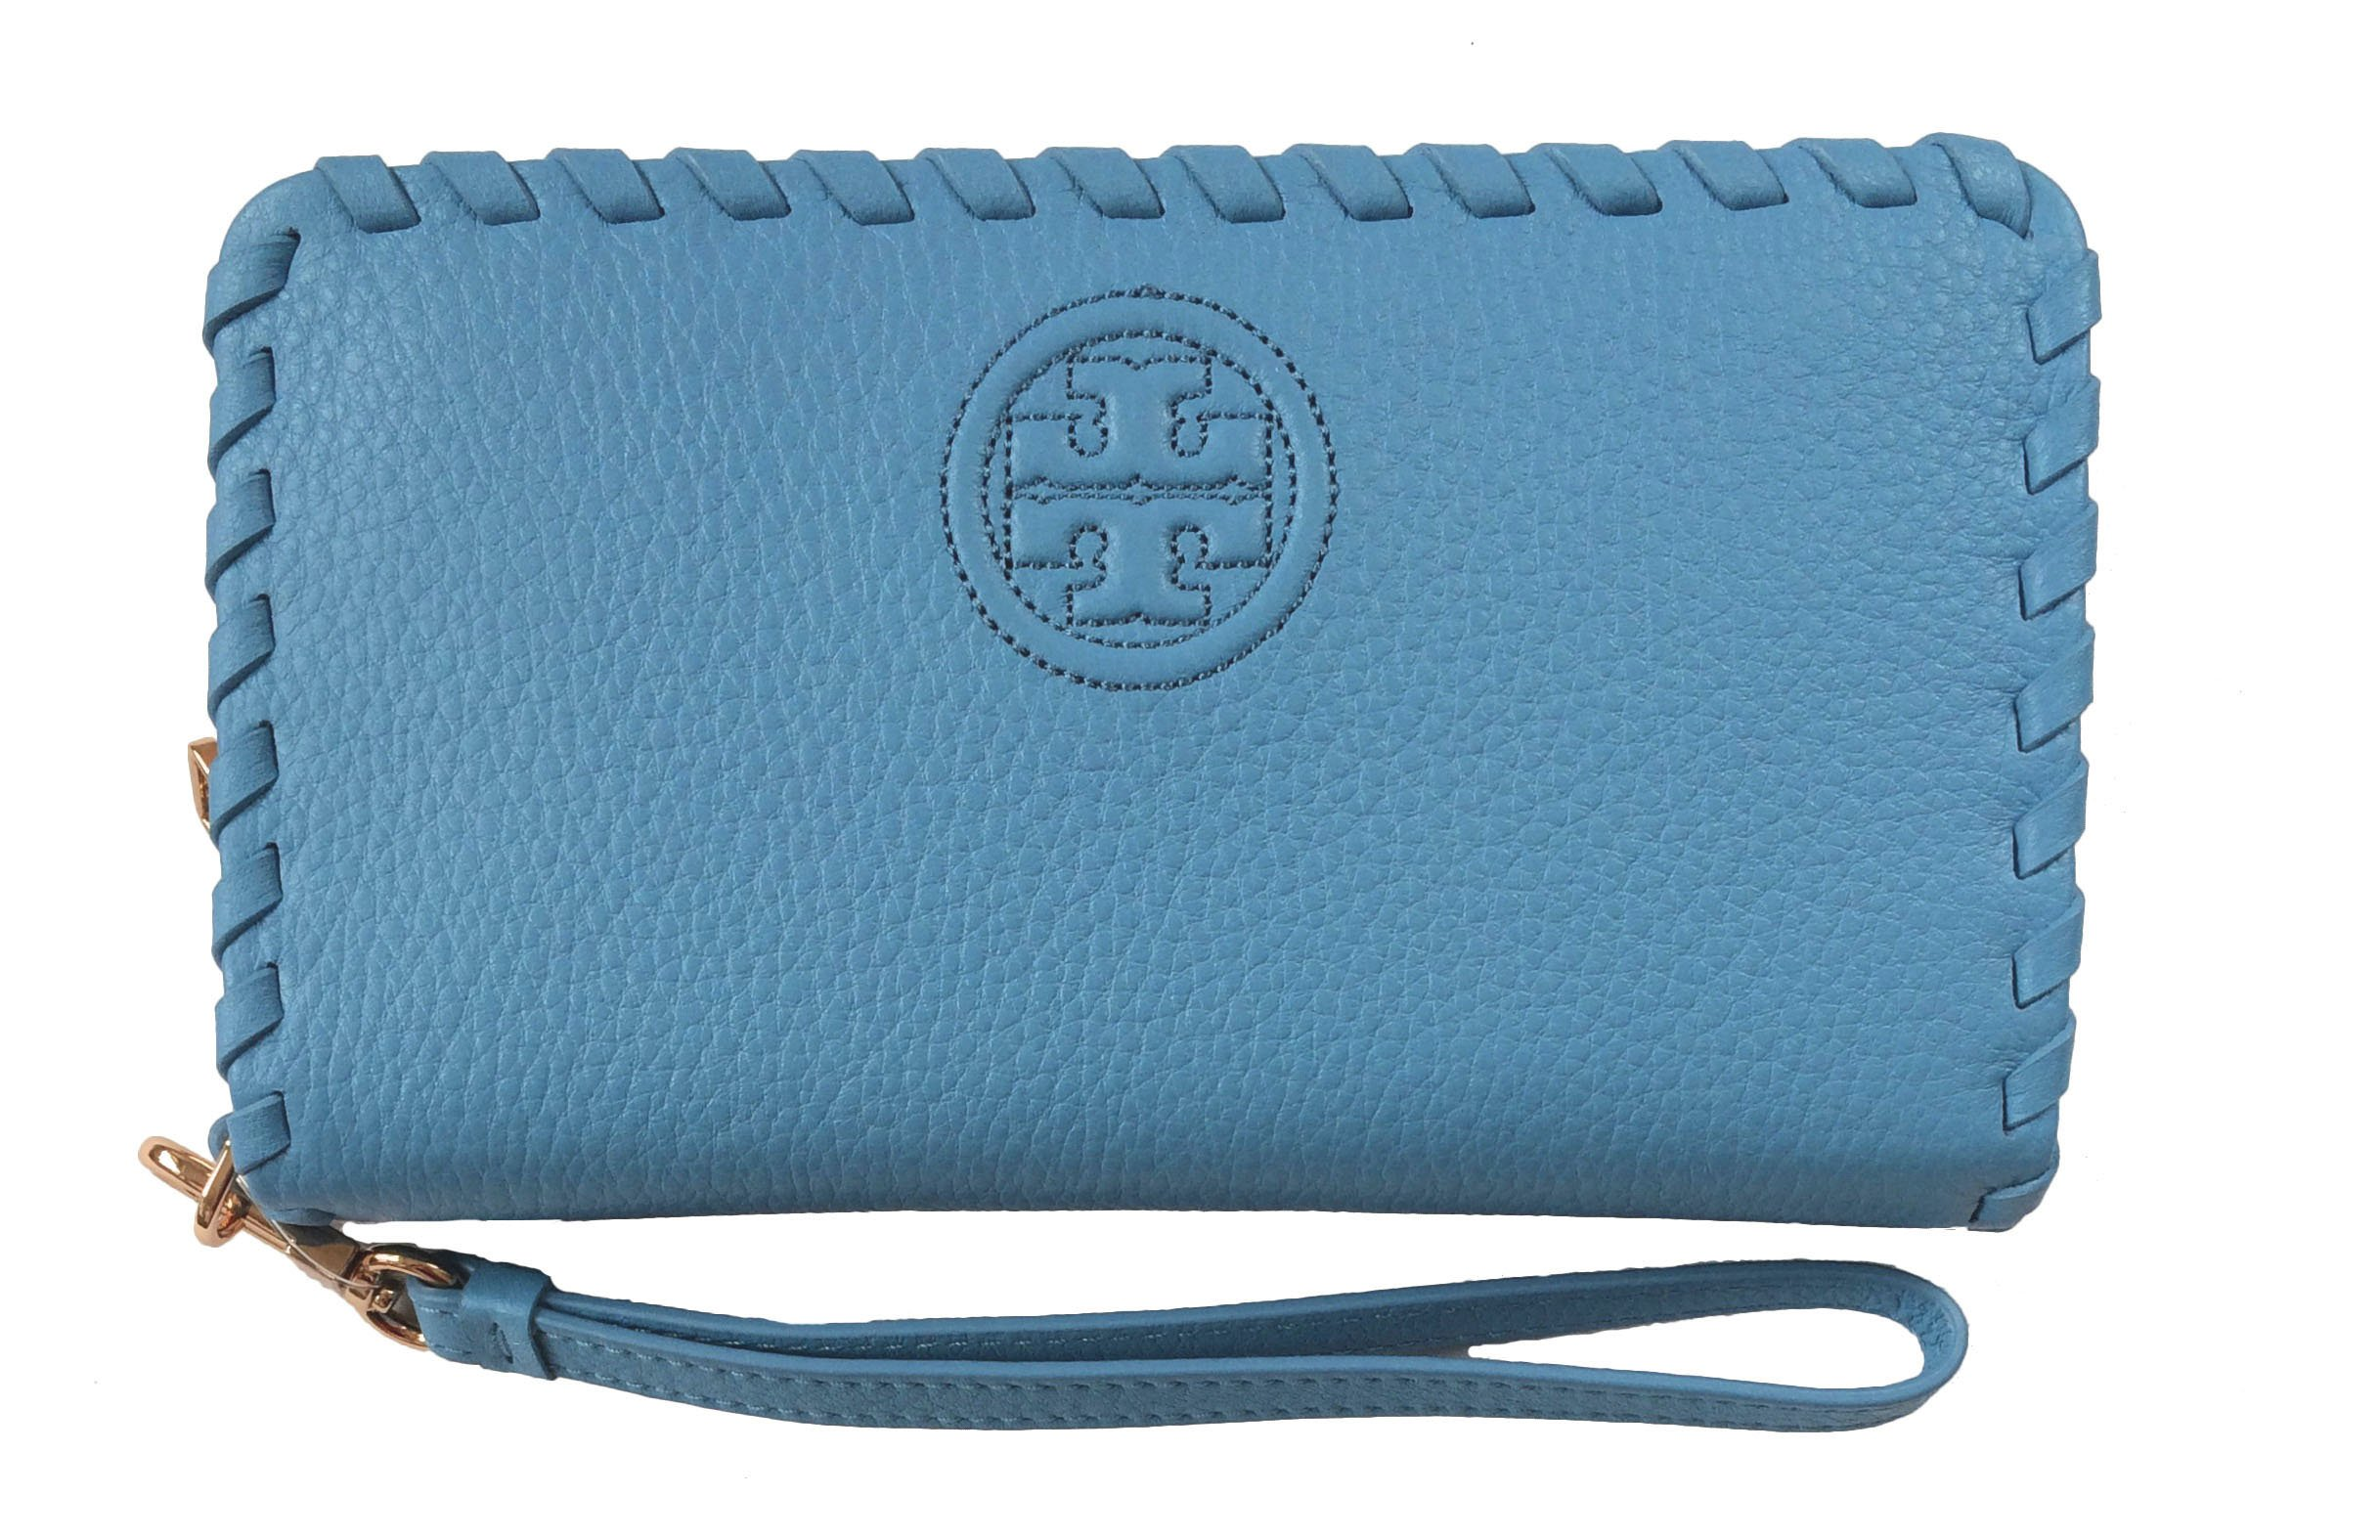 Tory Burch Marion Leather Smartphone Wristlet (Montego Blue)